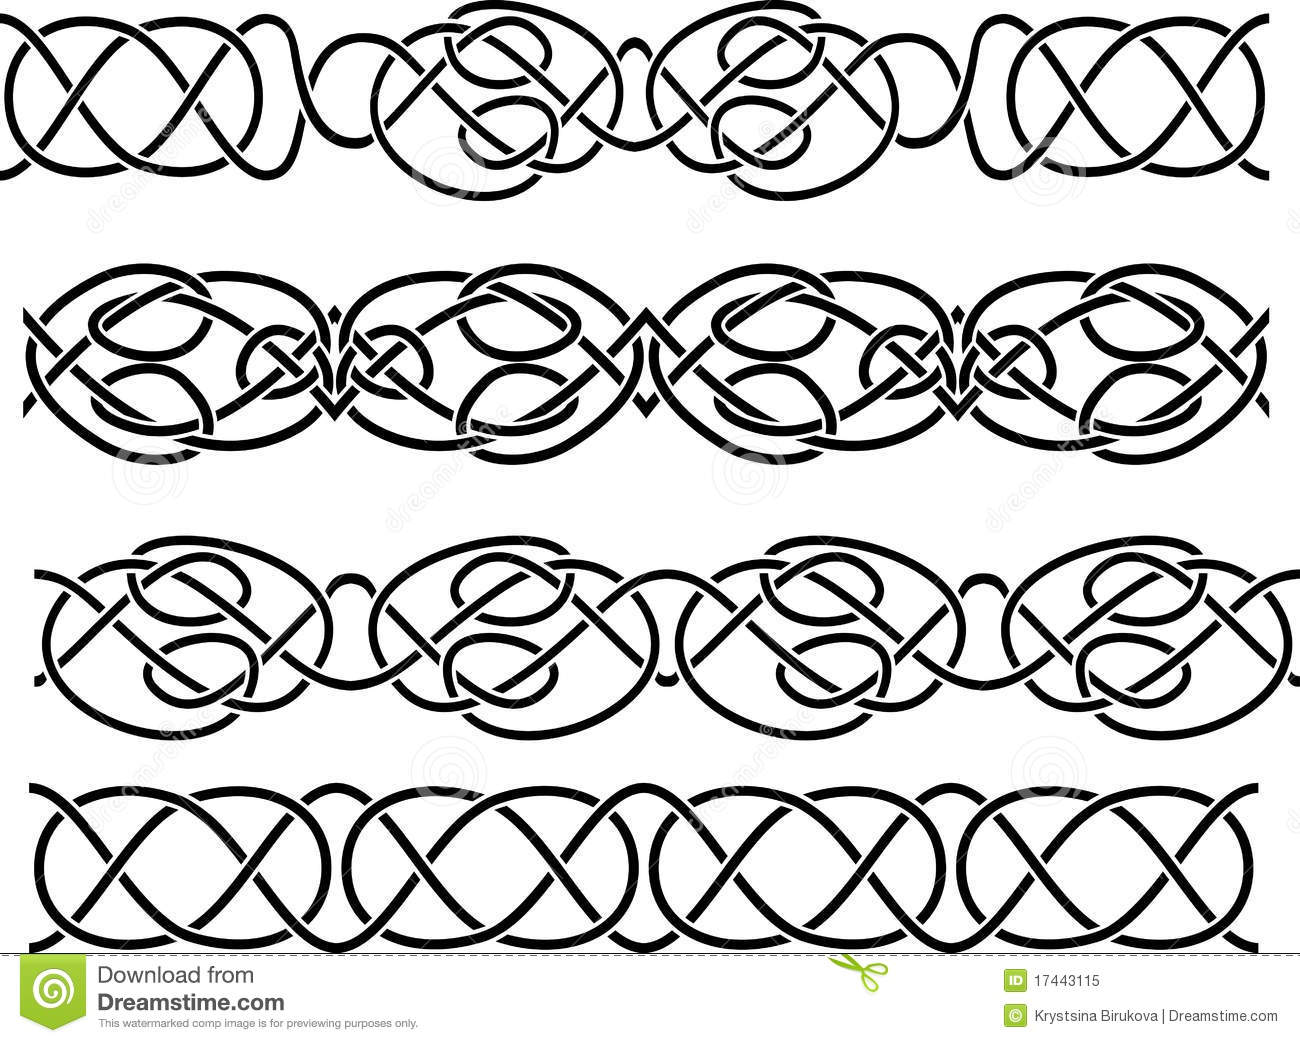 505793 also Lock Outlined Padlock Symbol For Security Interface 56191 together with Know They Are Celtic Knot Border Clip Art 137 Tattoo Page There XZa2ln Clipart as well Doodle Clipart further Blank Signpost Gm183296009 14507982. on arrow clip art